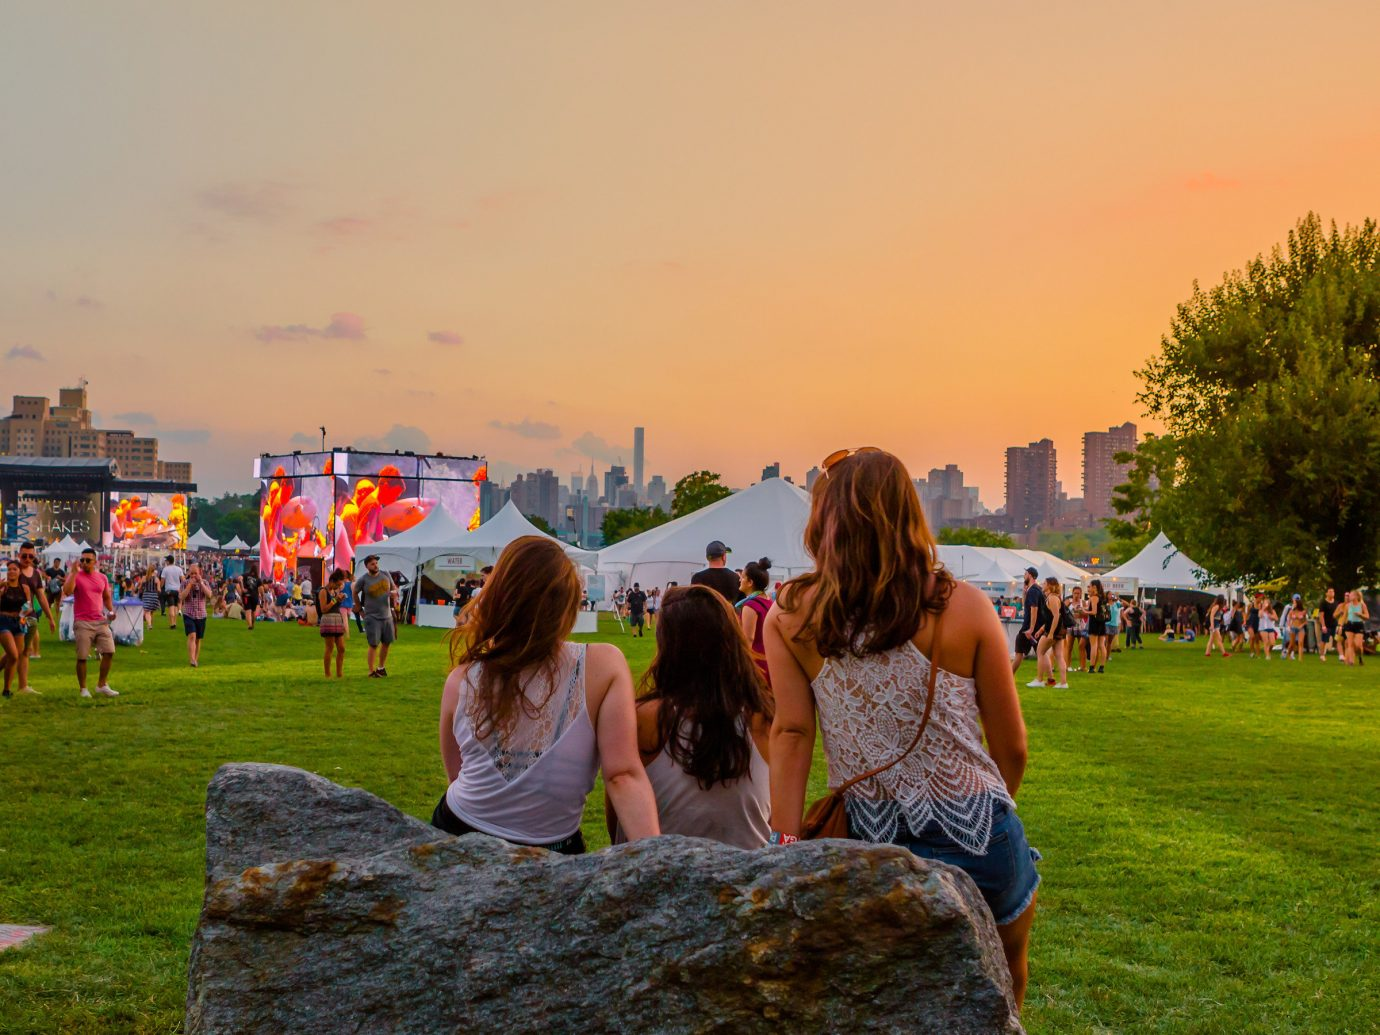 Arts + Culture concert music festival music venue summer grass sky outdoor person season vacation morning megalith